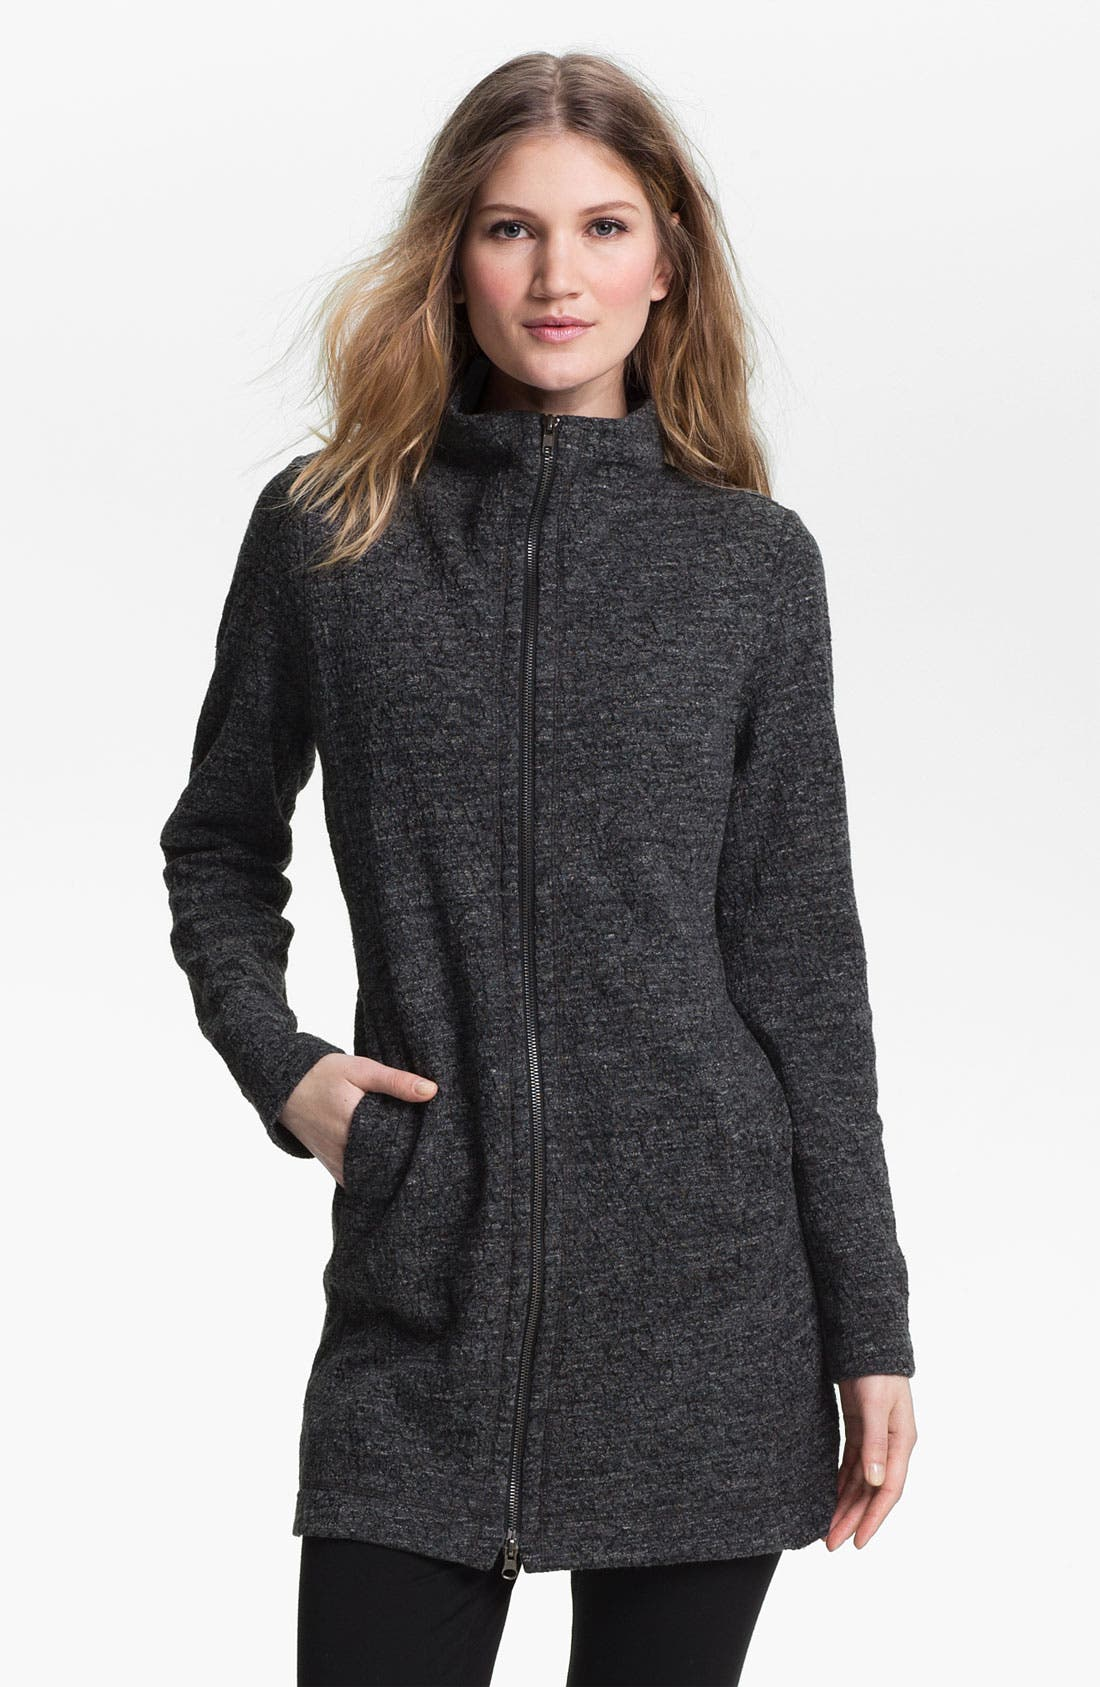 Alternate Image 1 Selected - Eileen Fisher Funnel Neck Zip Jacket (Petite)